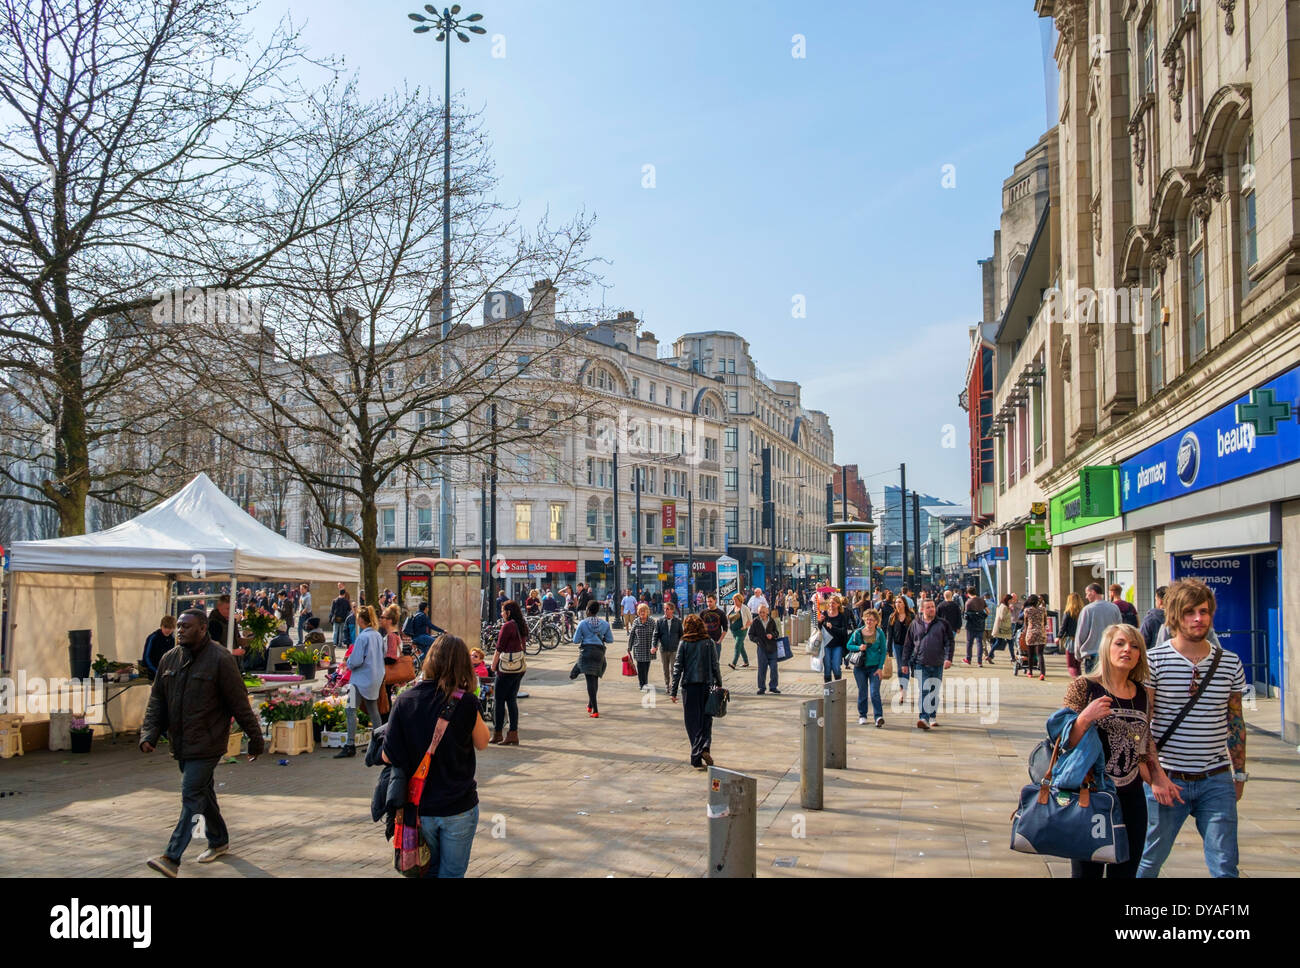 View down Market Street from Piccadilly Gardens in the city centre, Manchestrer, England, UK - Stock Image